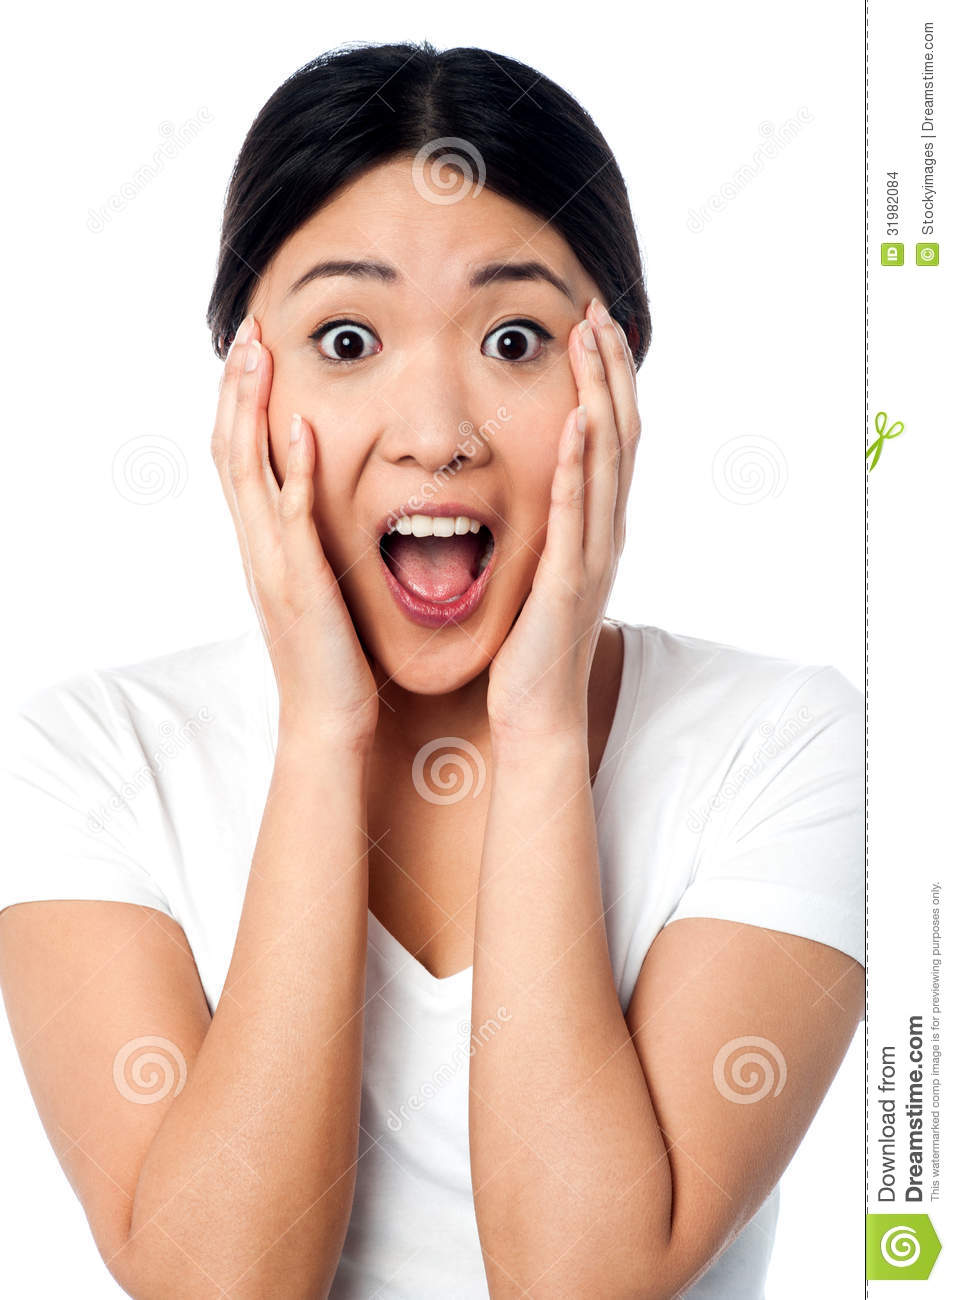 Surprised Girl With Wide Open Mouth Stock Images - Image: 31982084